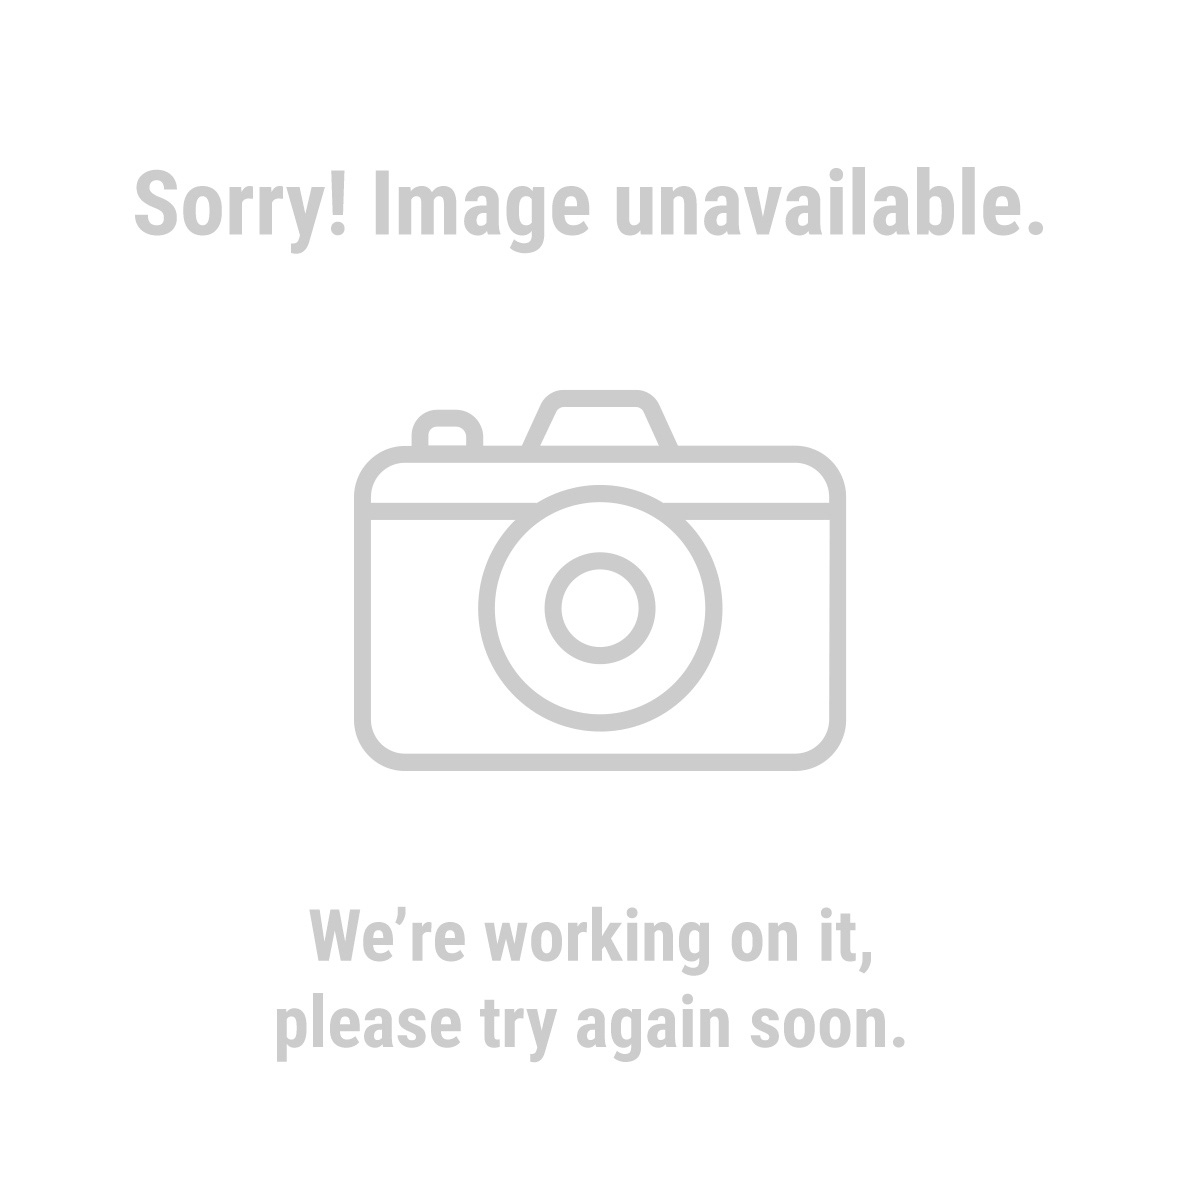 Warrior 69658 4 Piece Large Diamond Grinding Wheel Set